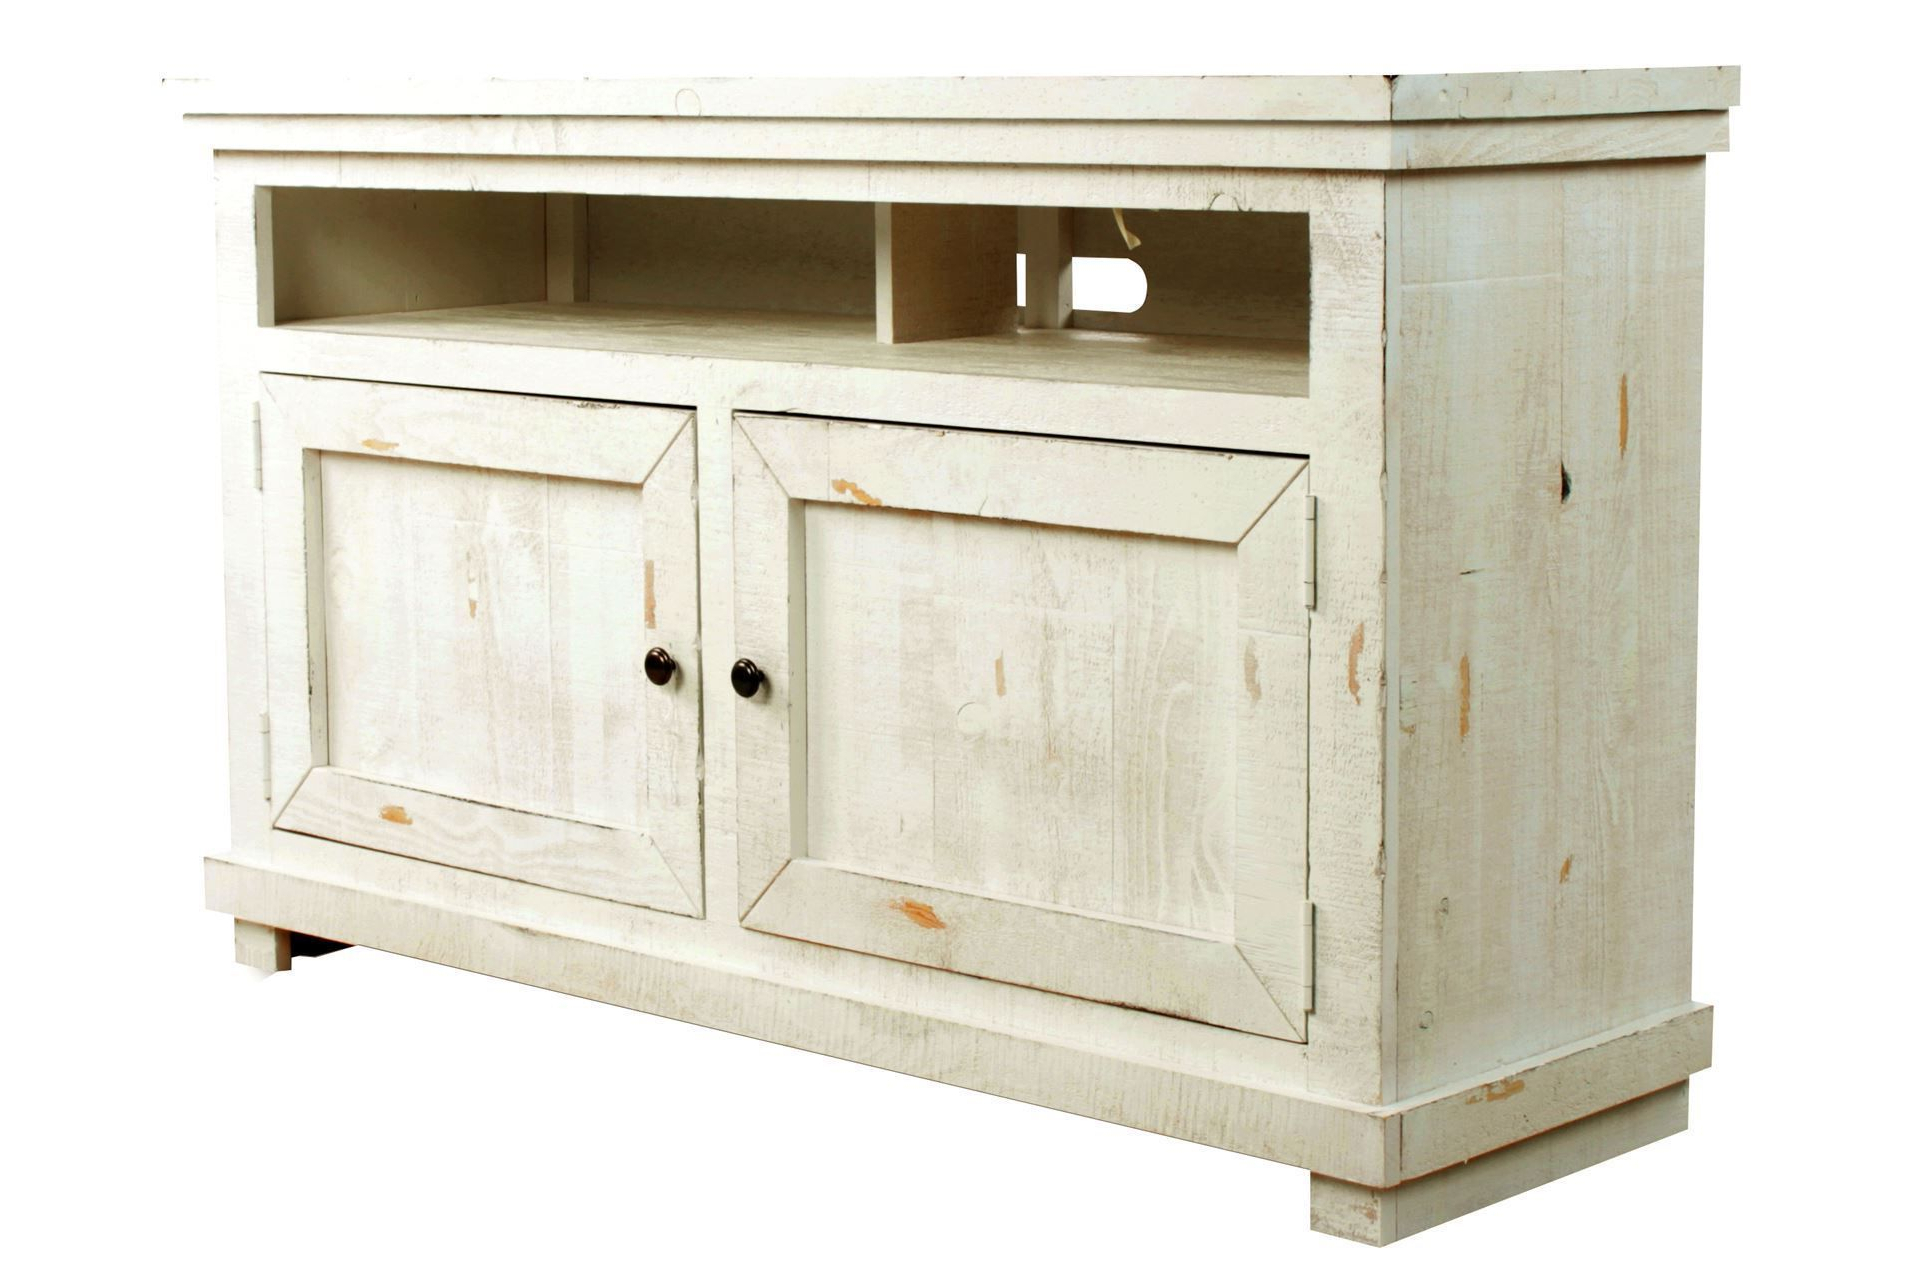 54 Inch Tv Stand, Sinclair White, Weathered White | Consoles, Tv Inside Sinclair White 54 Inch Tv Stands (View 2 of 20)